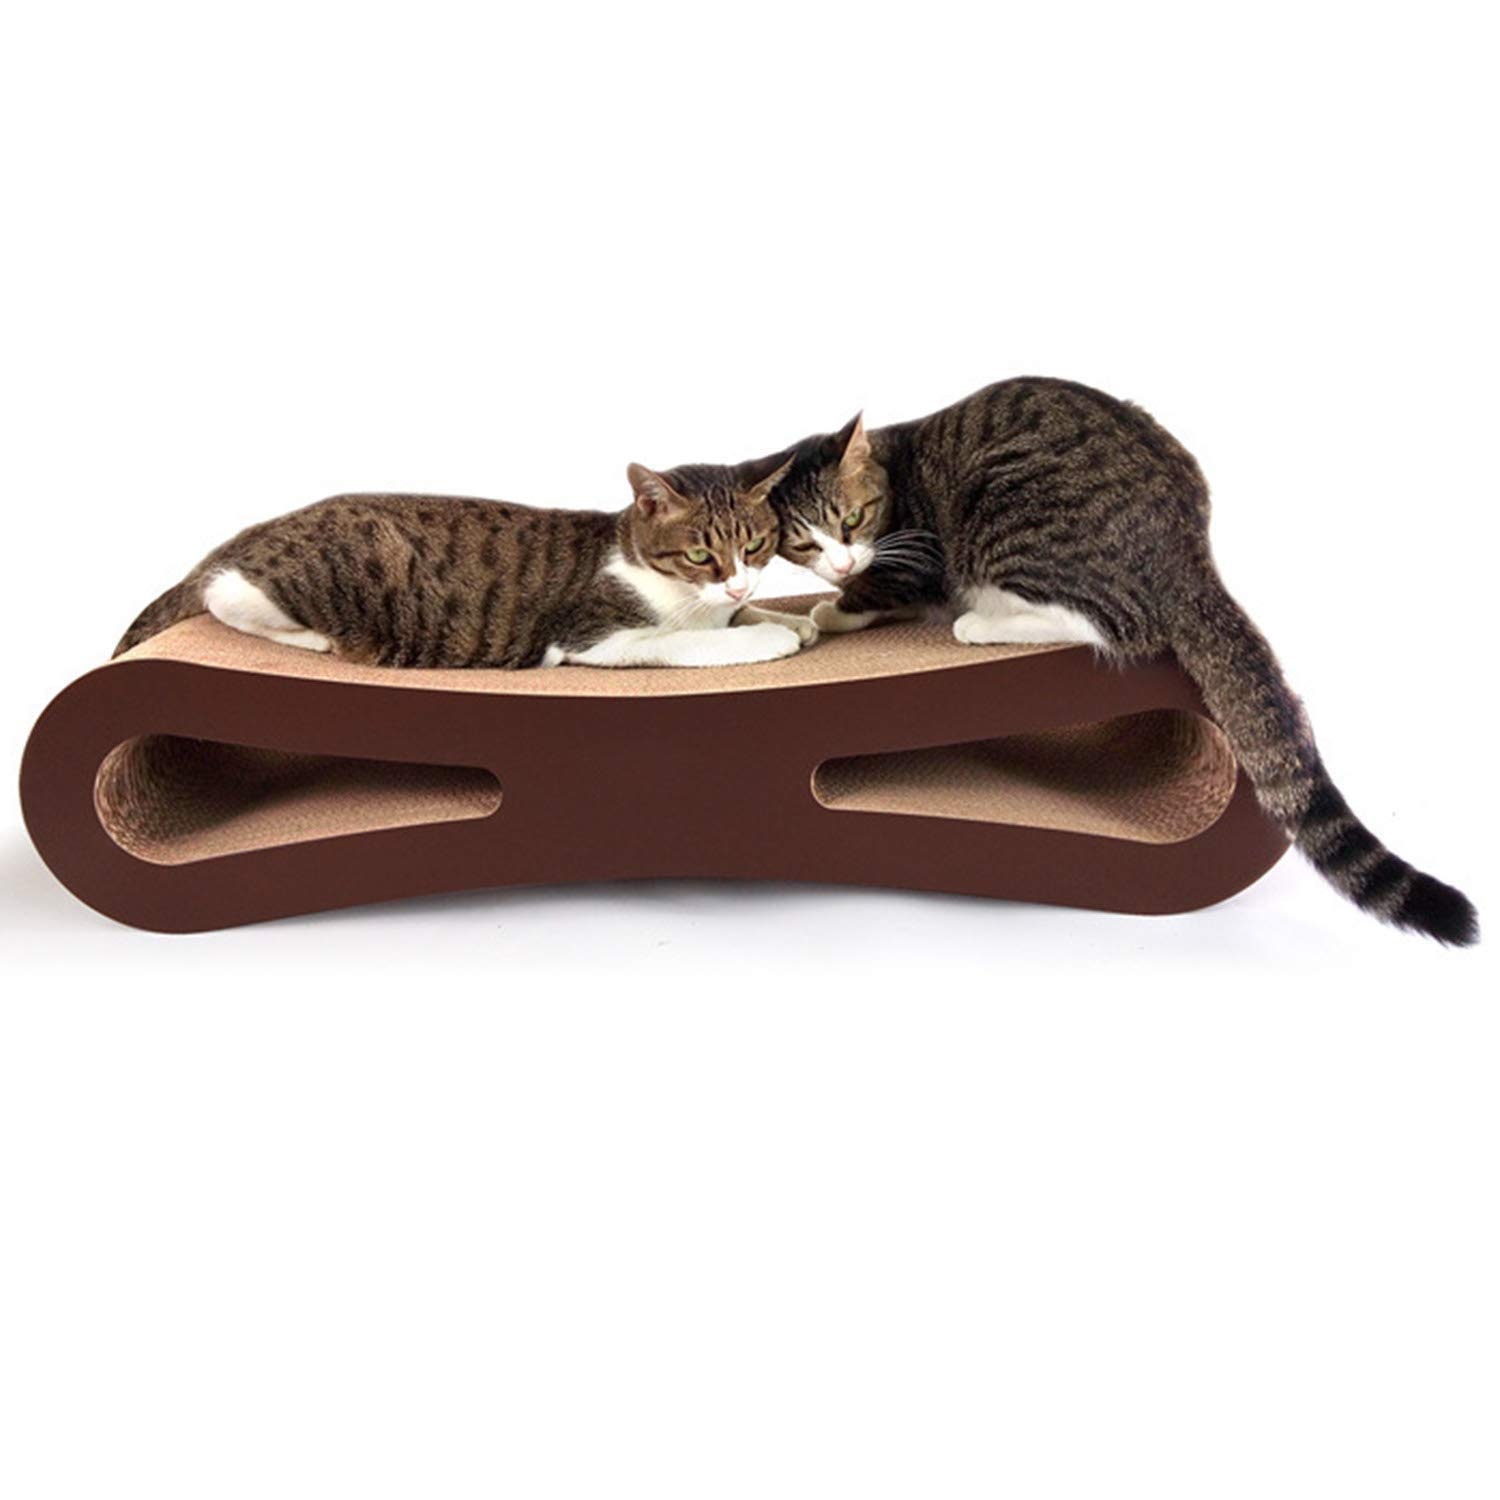 Durable Corrugated Paper Cat Scratch Board Cat Furniture Cat Claw Toy Cat Nest 83X26.5X19cm Suitable for Many Cats Or Other Small Pets High Load Bearing